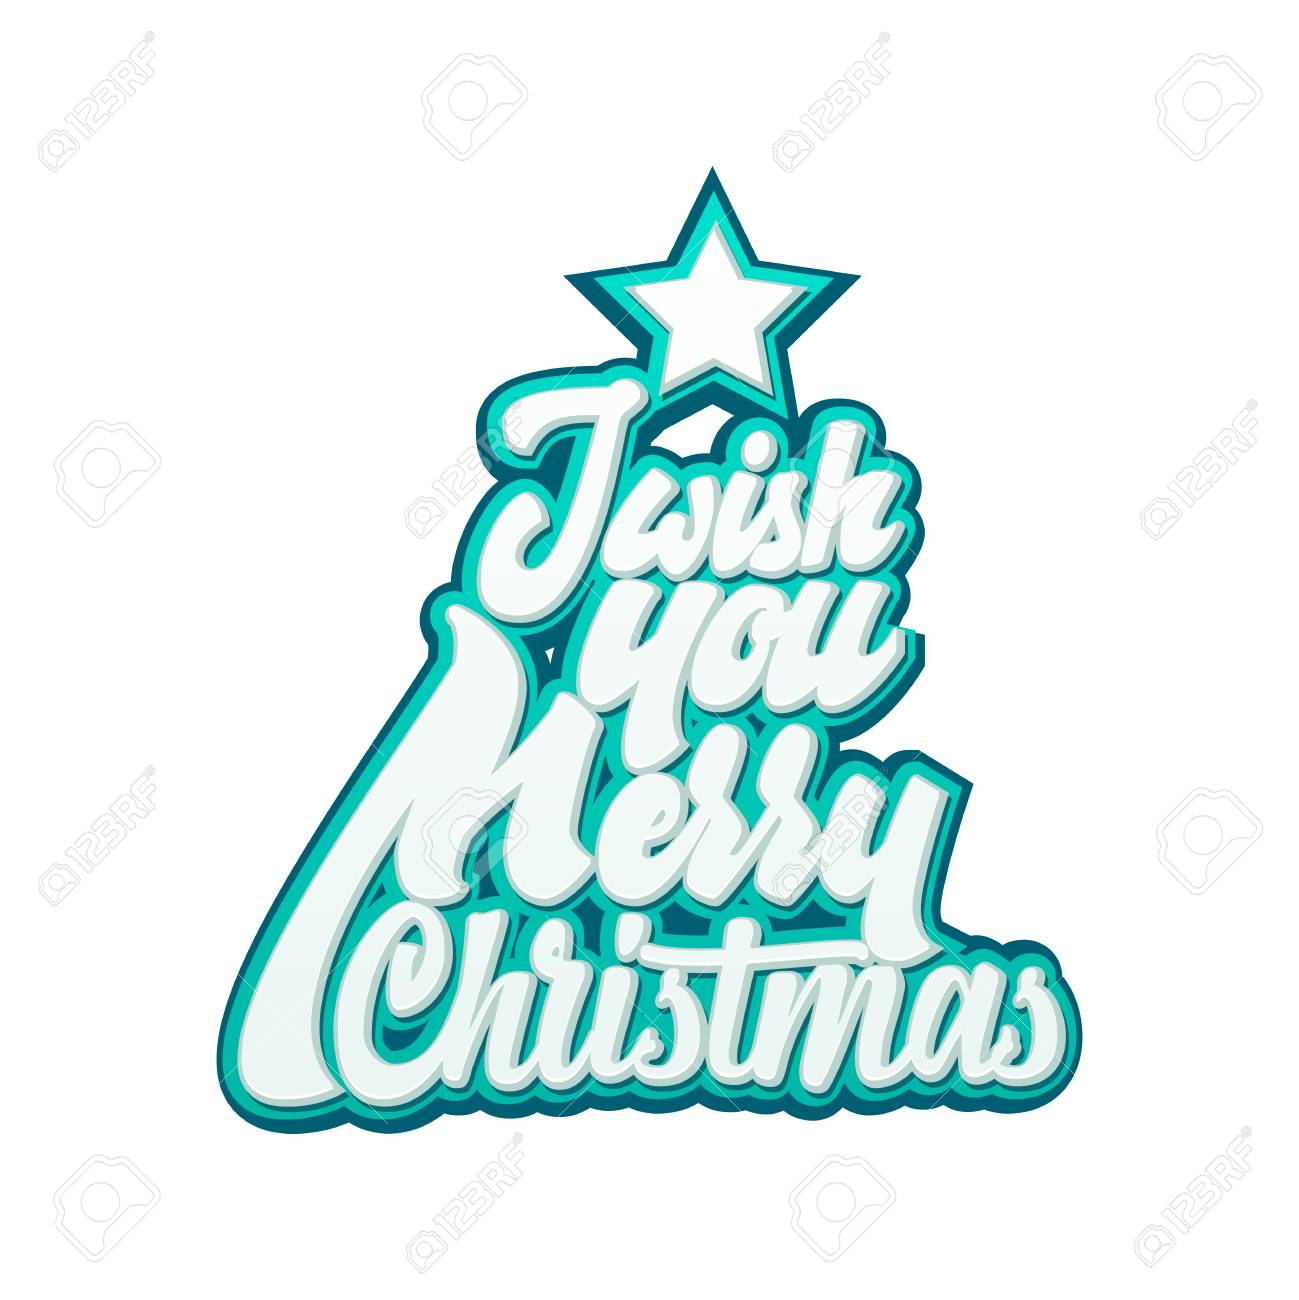 I Wish You Merry Christmas. Lettering And Calligraphy With ...